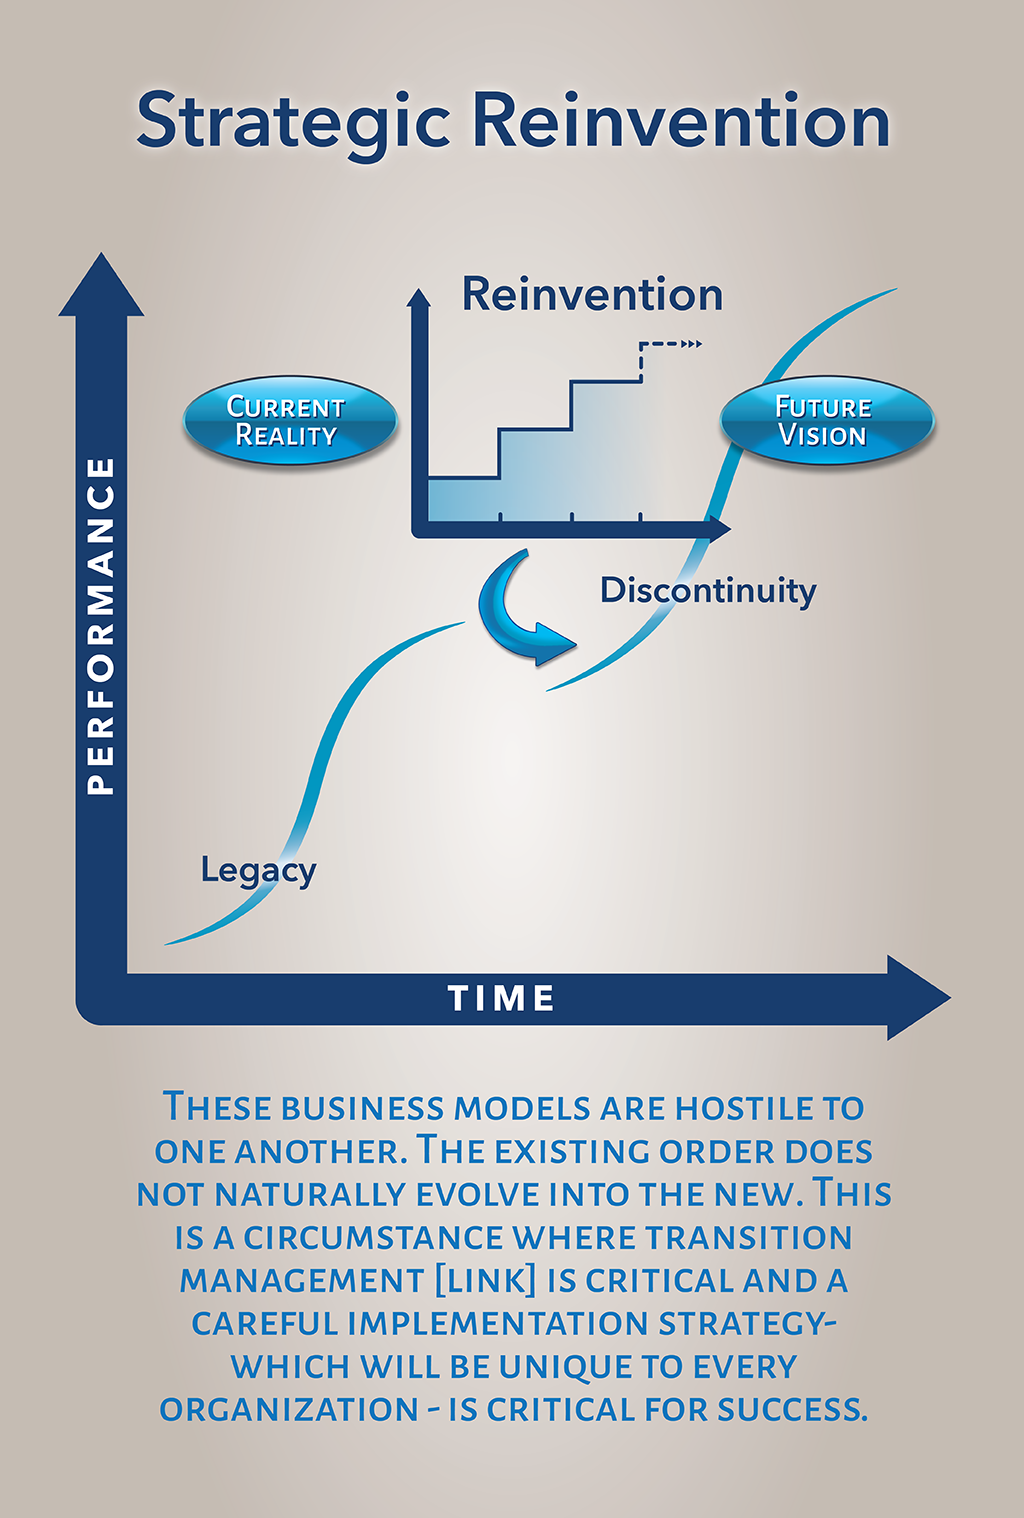 SYM_StrategicReinvention_Graphic_vertical_160711_v4